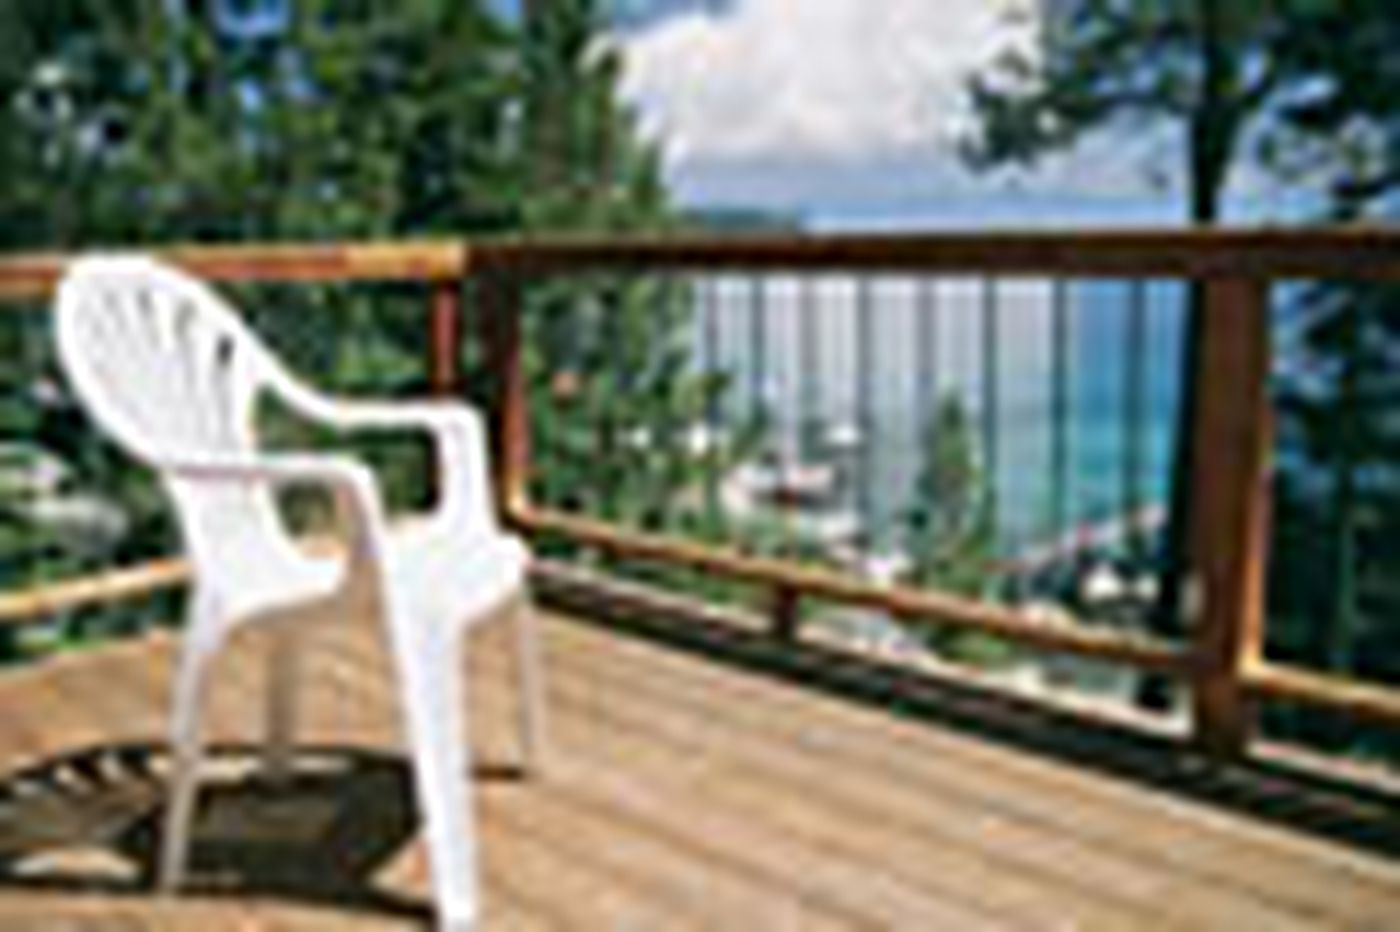 Your Place: Seal the deck, then seal it again in 18 months